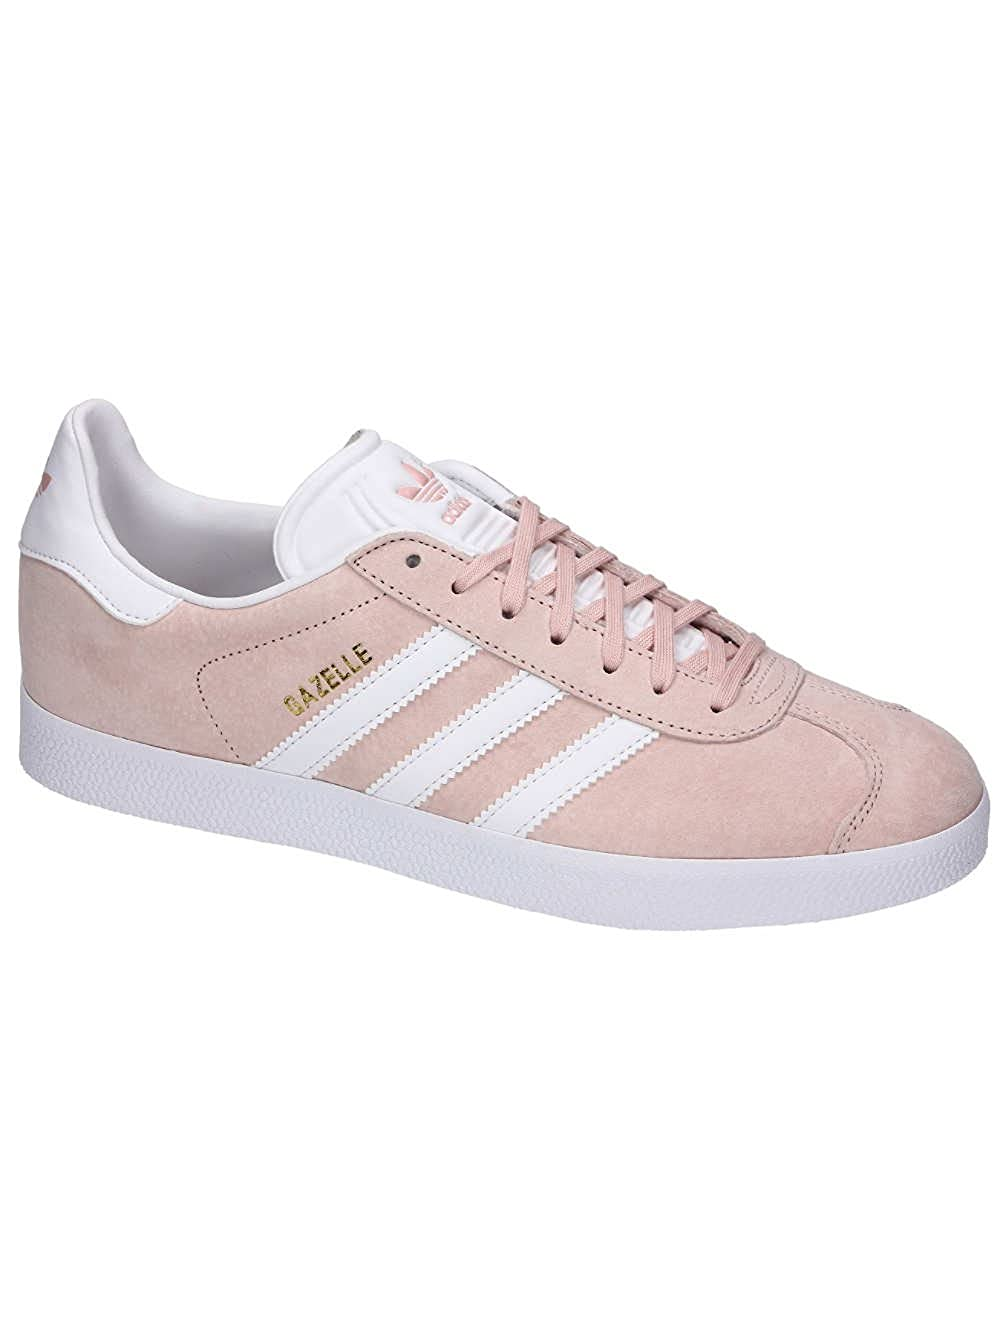 Vapour Pink F16 White Gol adidas Unisex Adults' Gazelle Low-Top Sneakers